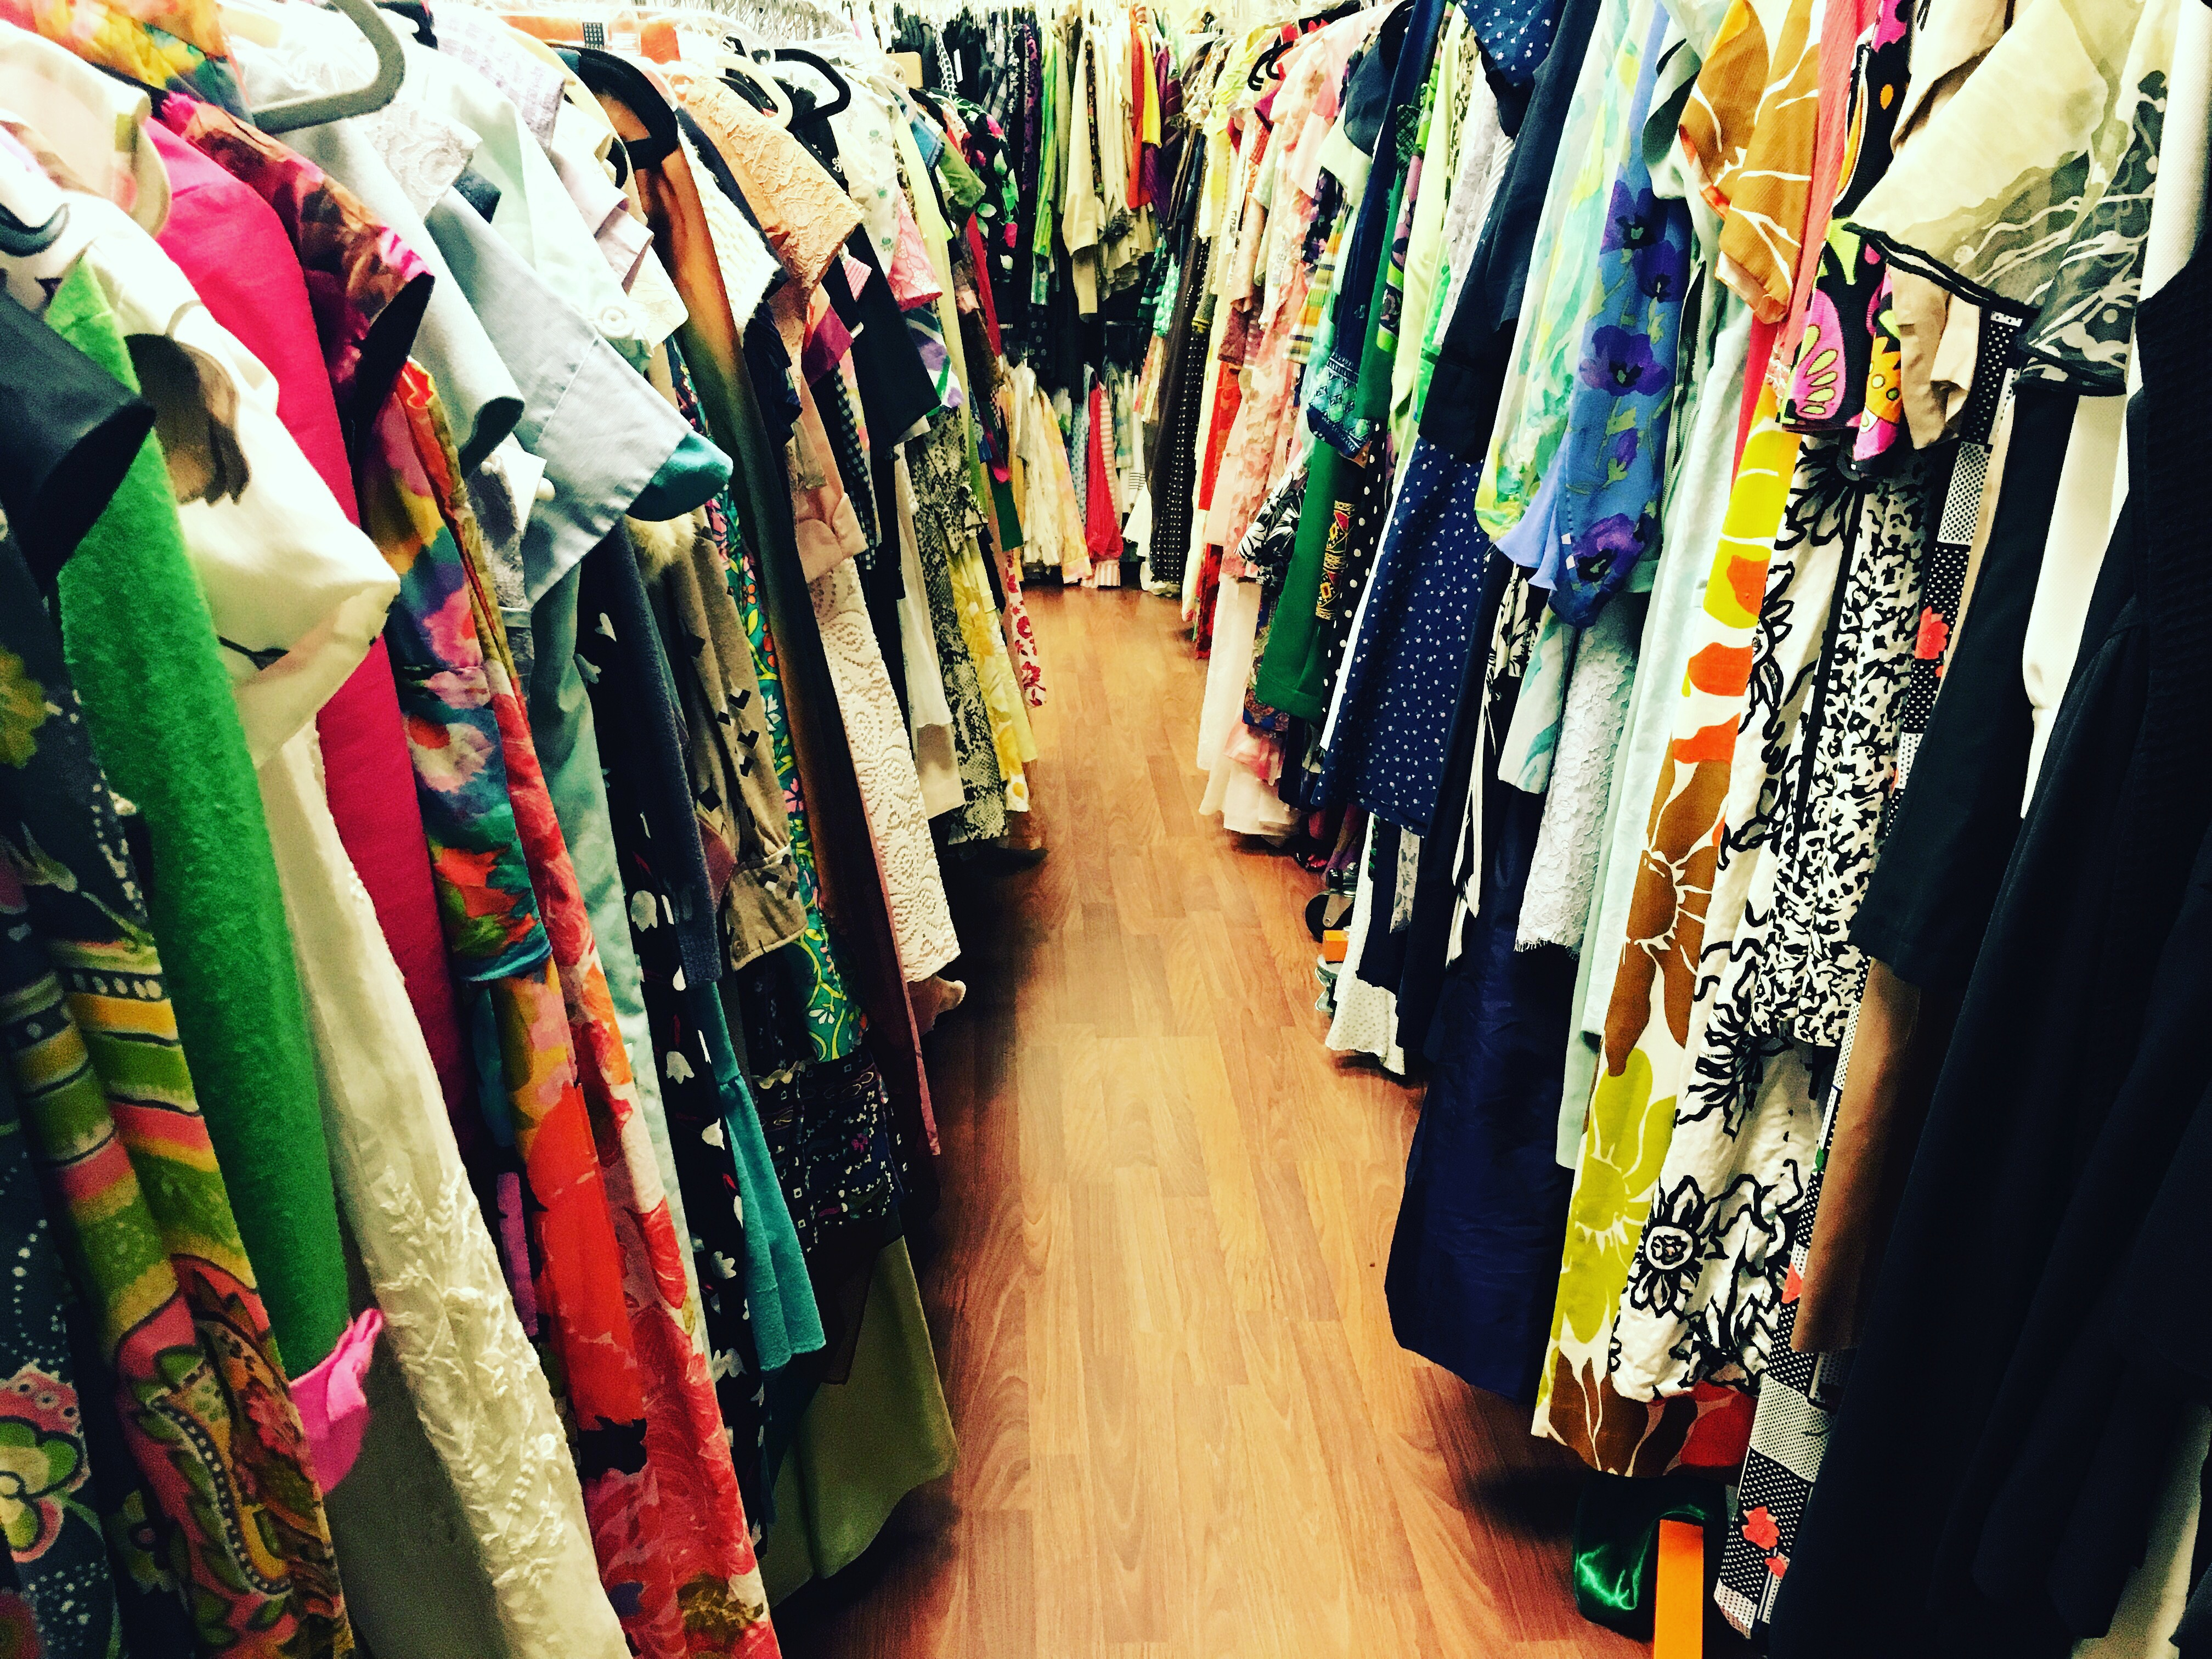 Vintage Clothing Showroom Sale: Where is it? What is it? When is it ...